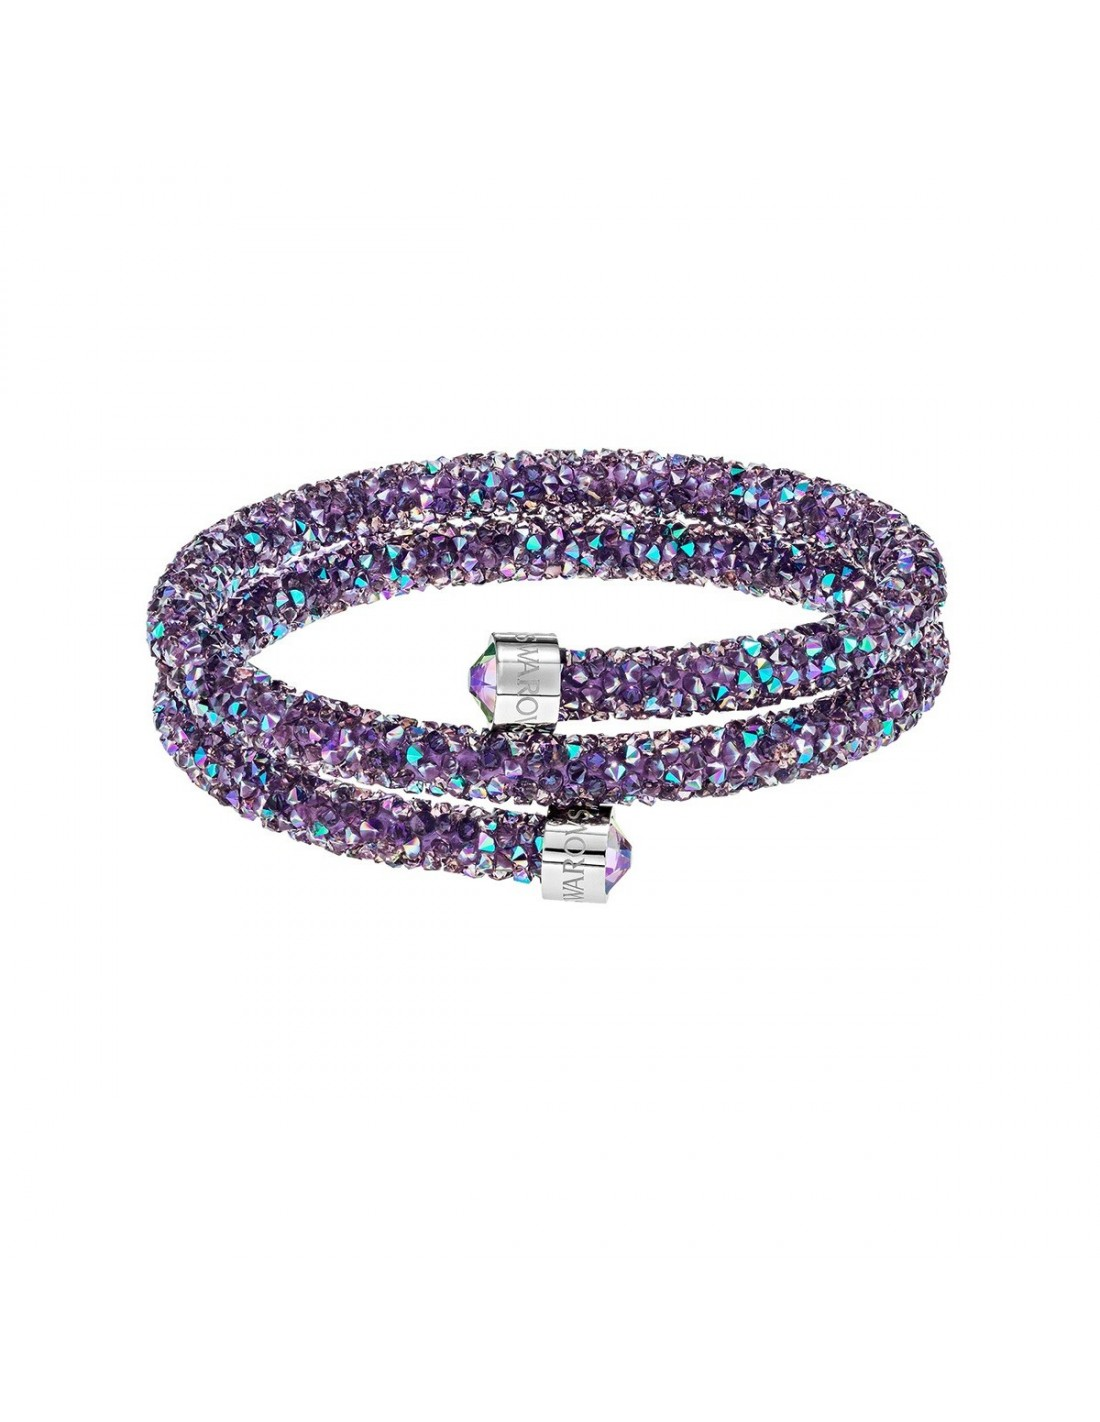 star haak annie stackable in weeny purple teeny bracelet friendship